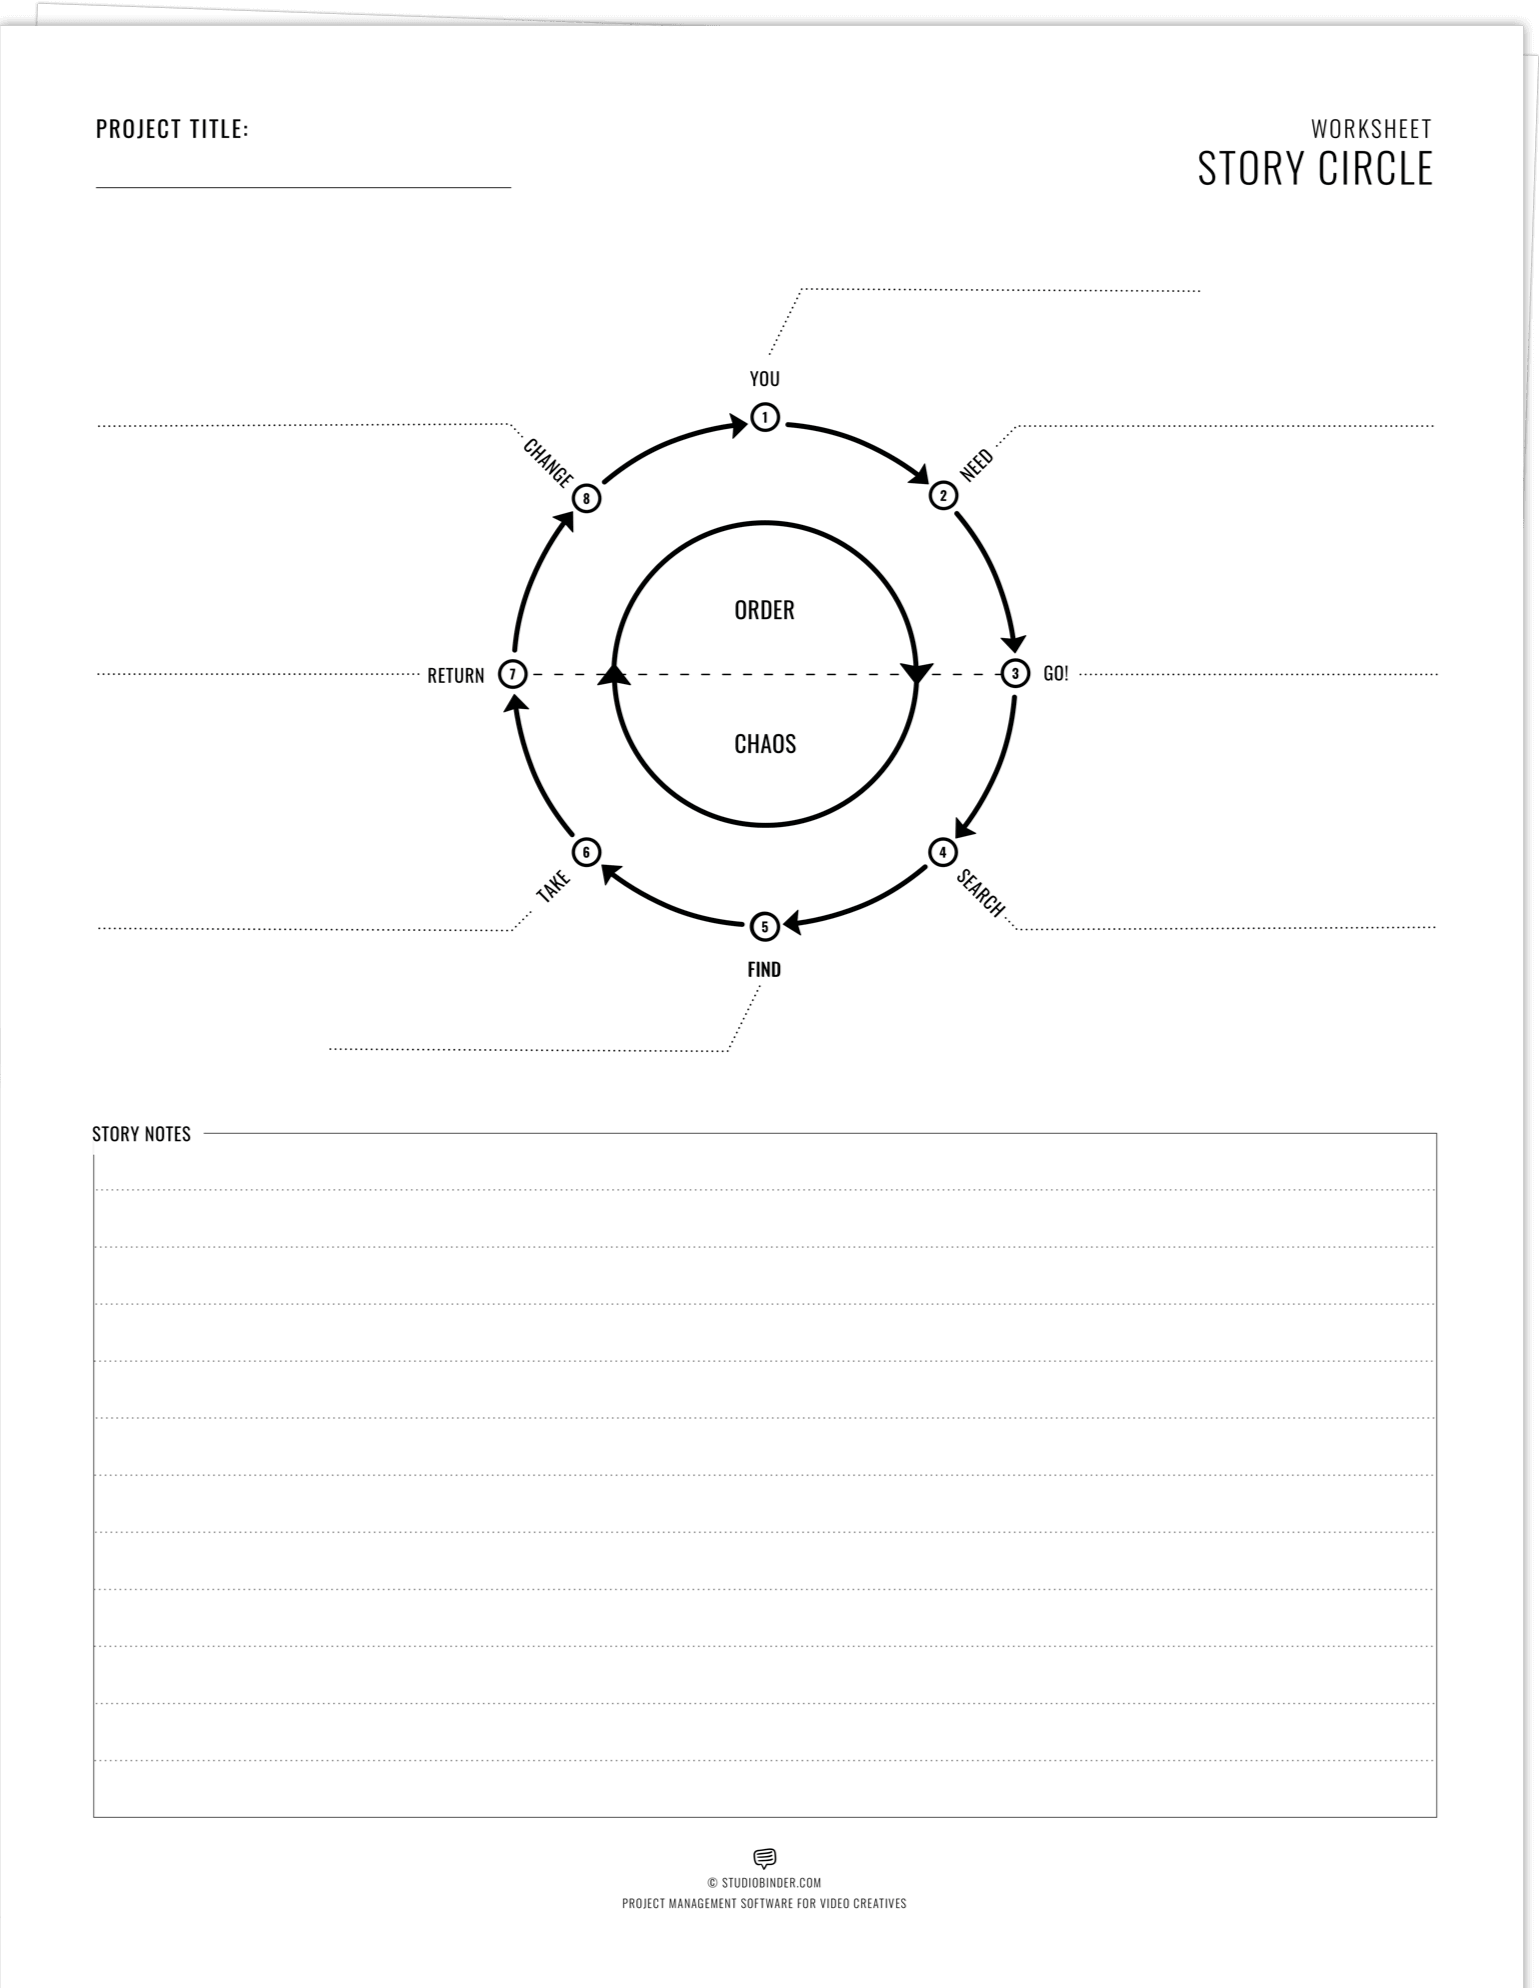 Dan Harmon Story Circle - Worksheet - Printable Worksheet v2 - StudioBinder